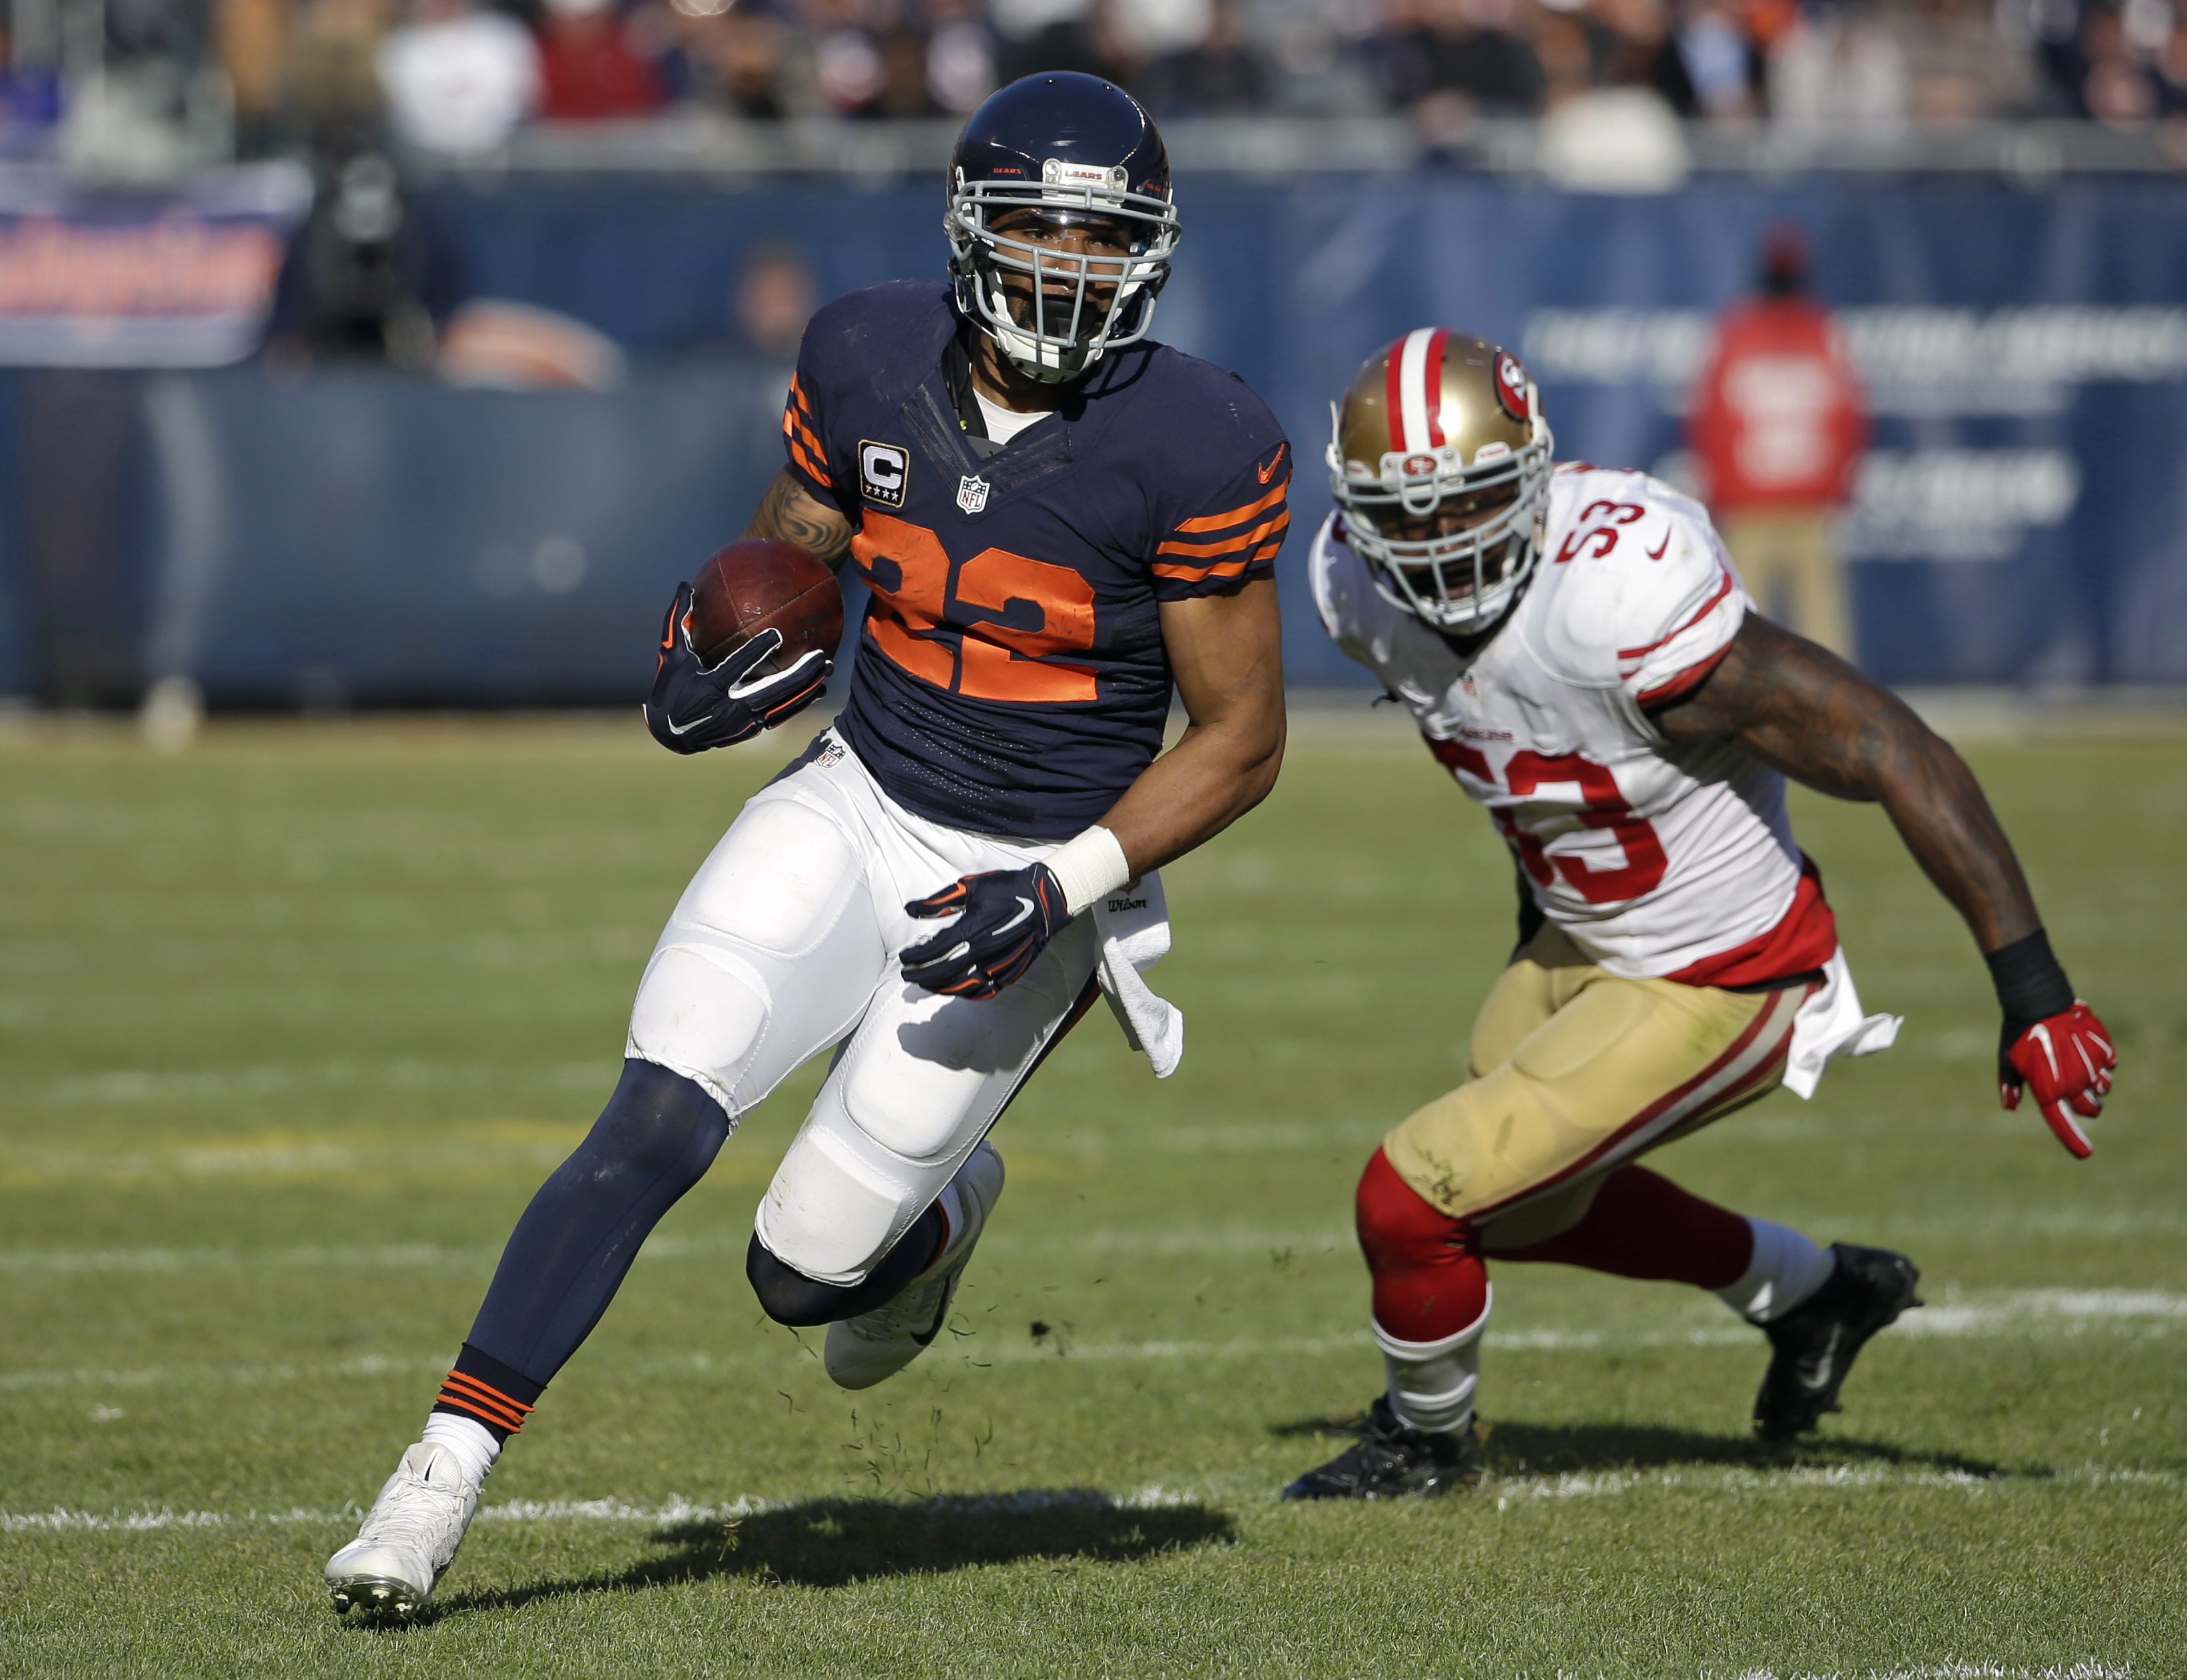 FILE - In this Dec. 6, 2015, file photo, Chicago Bears running back Matt Forte (22) rushes with the ball against the San Francisco 49ers during an NFL football game in Chicago. With three games left and an expiring contract, Forte's time with the Bears co